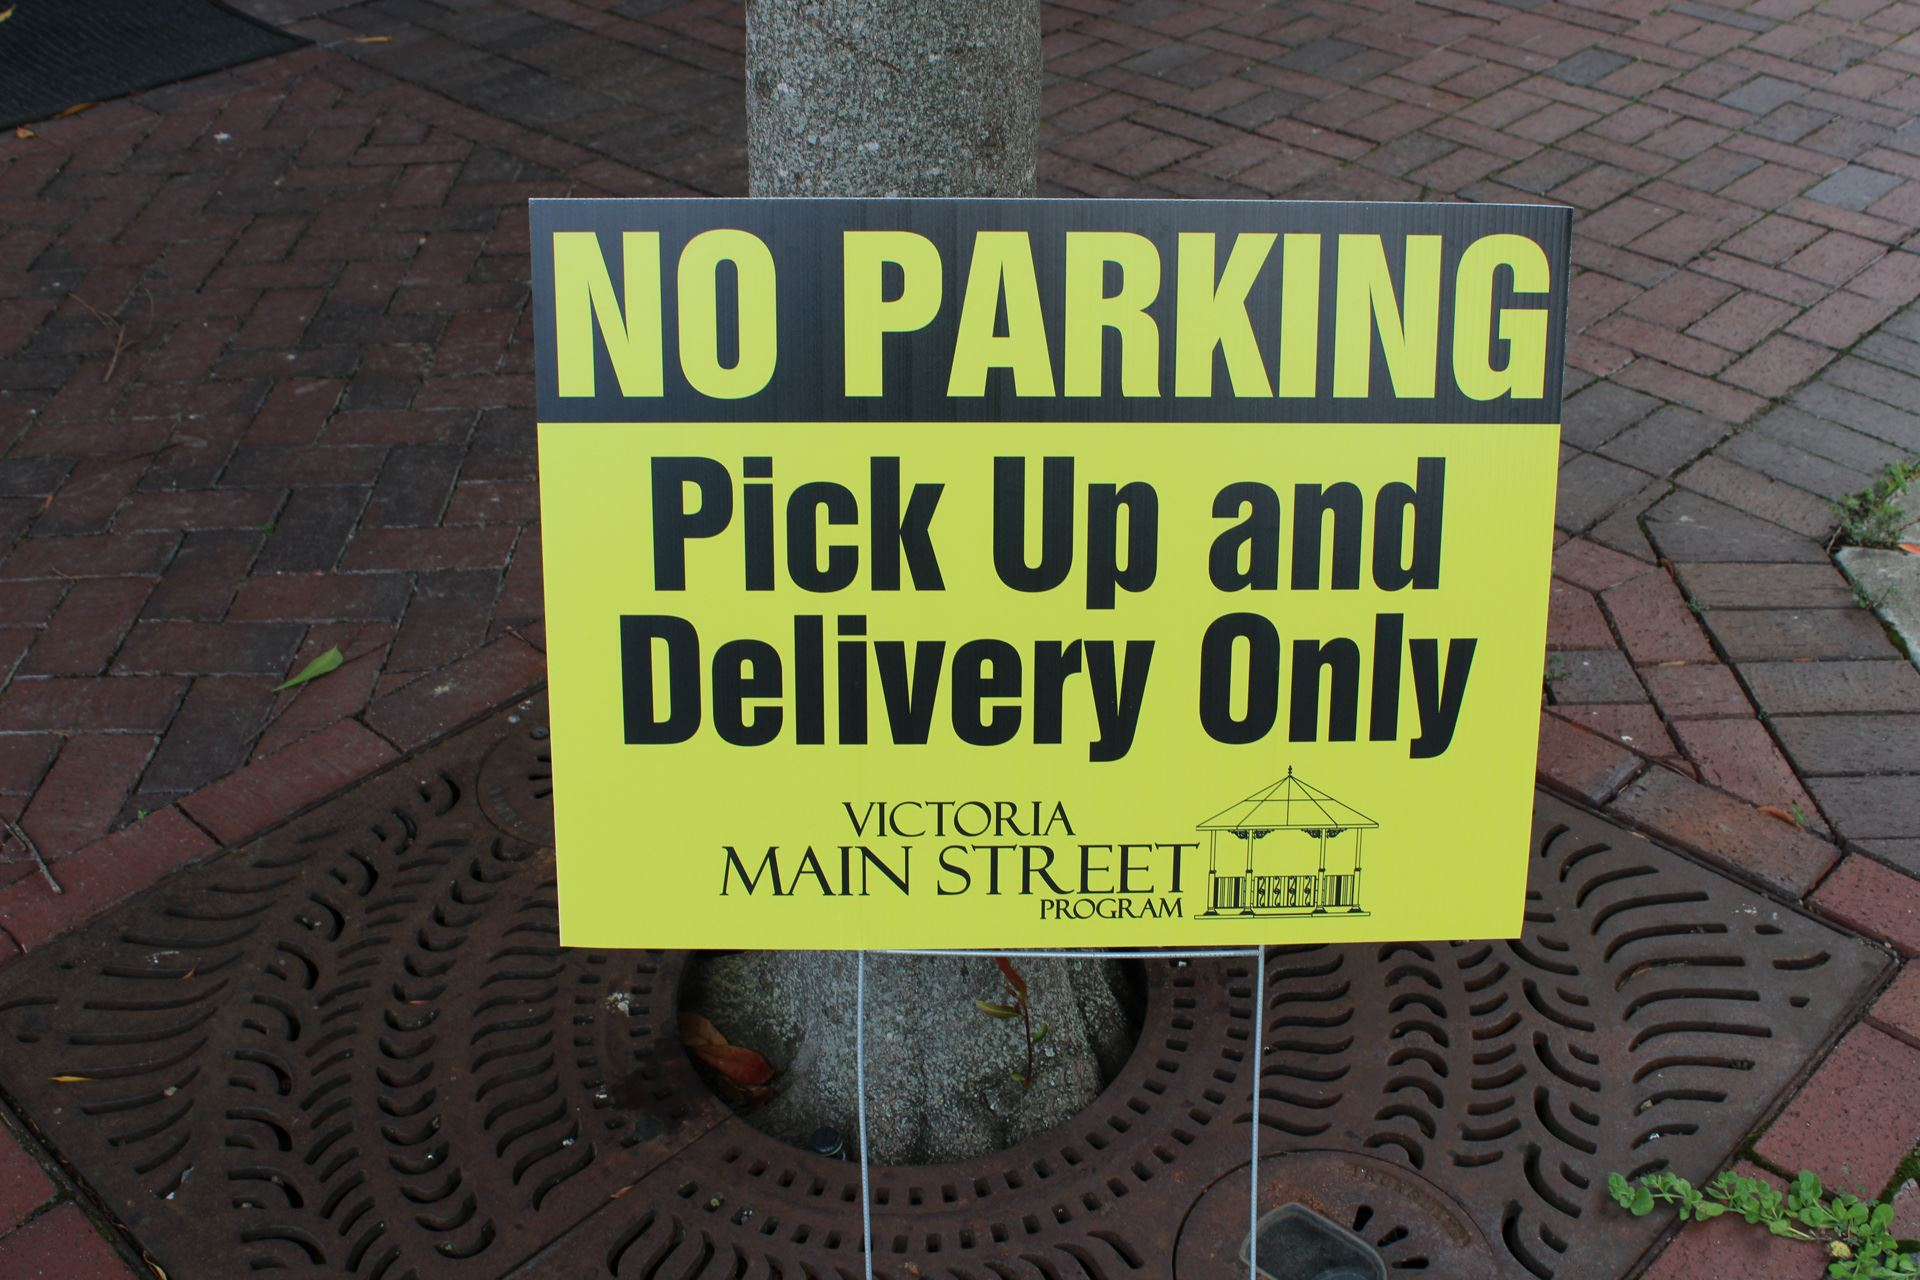 No Parking, Pickup and Delivery Only sign